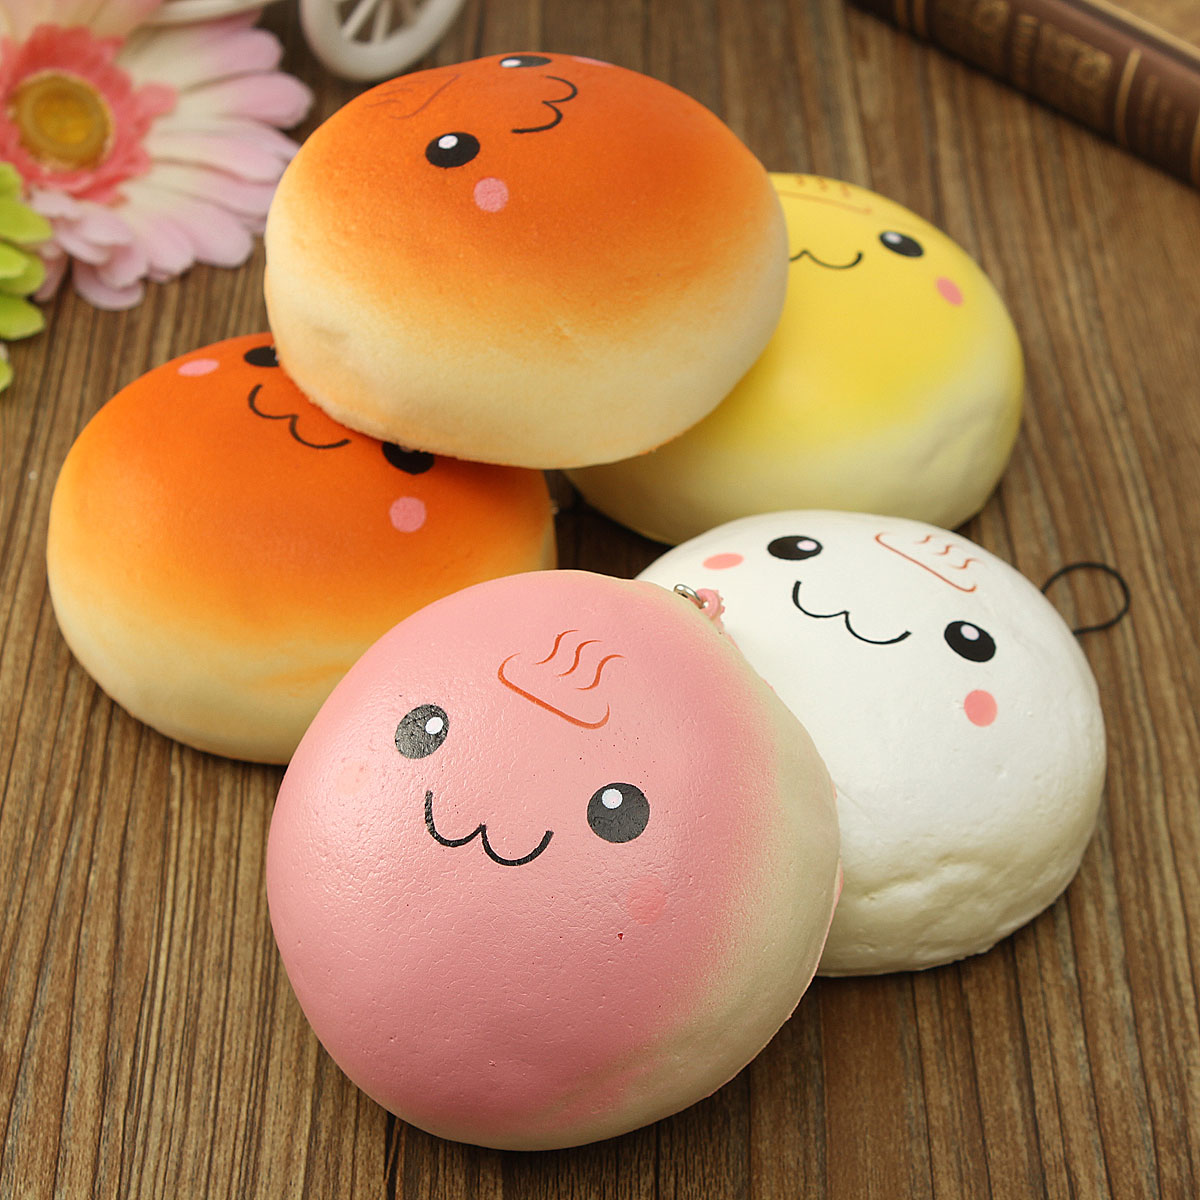 10cm Cute Smiling Expression Kawaii Squishy Bread Keychain